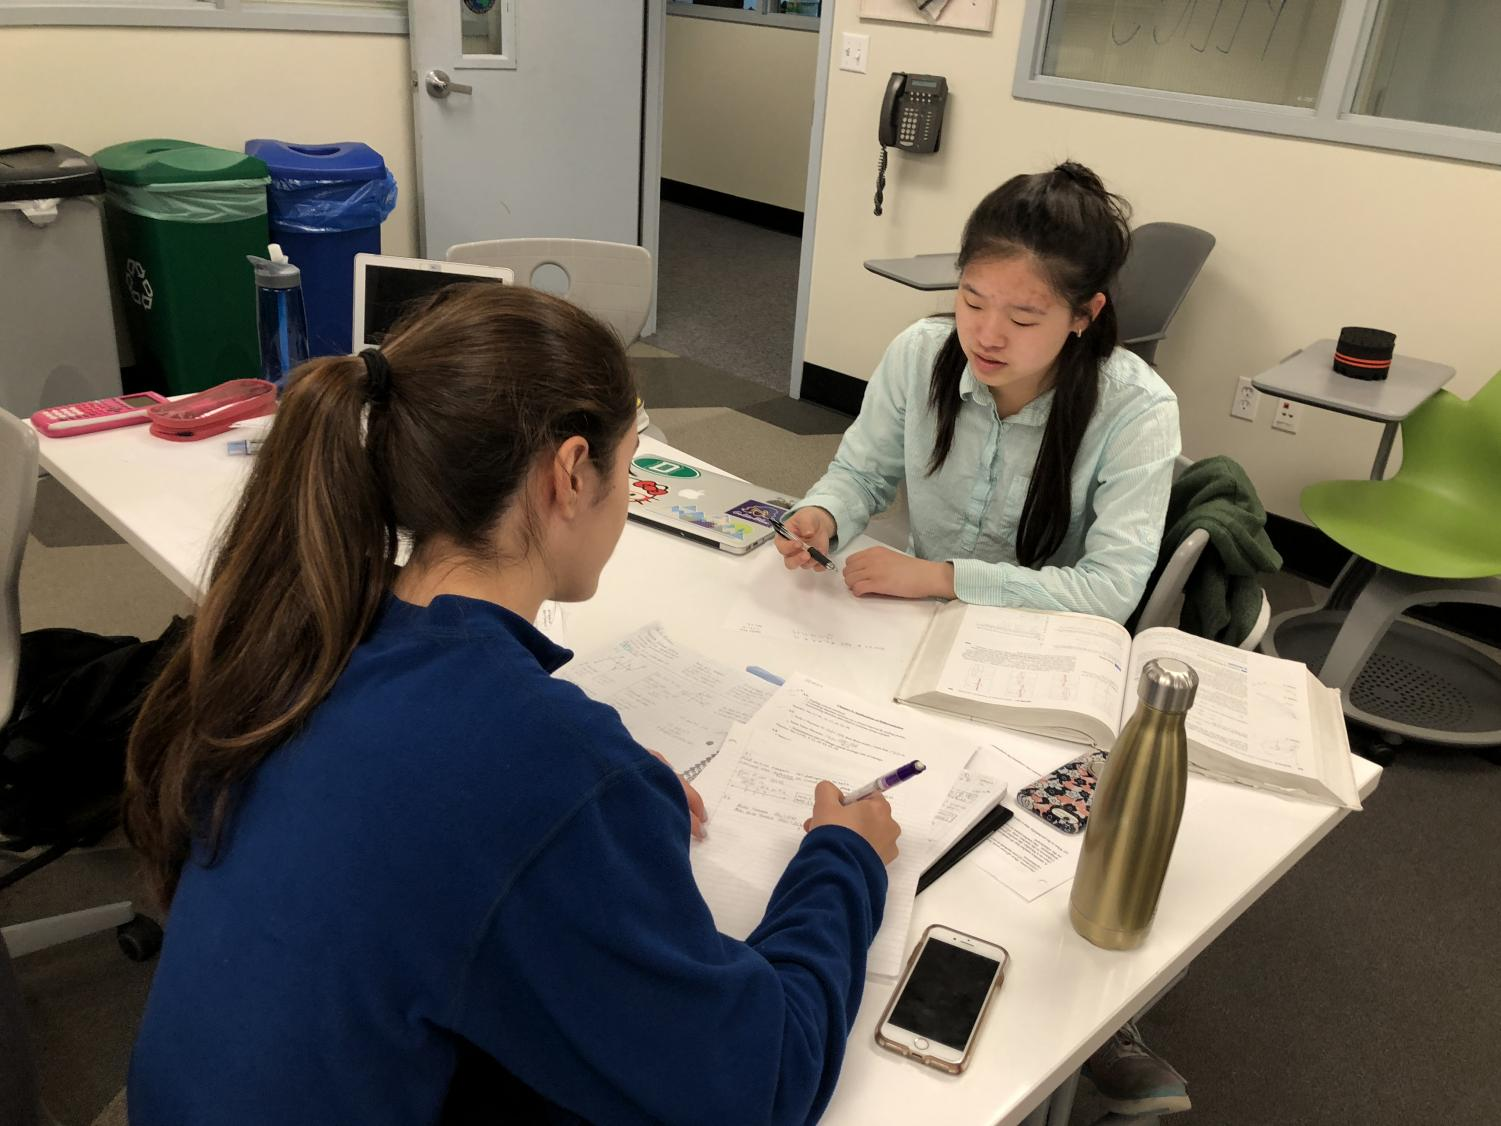 Senior Halie Kim helps senior Guilia Oltranti during peer tutoring session. The students in the room worked with each other as well as with Kim during the tutoring session.